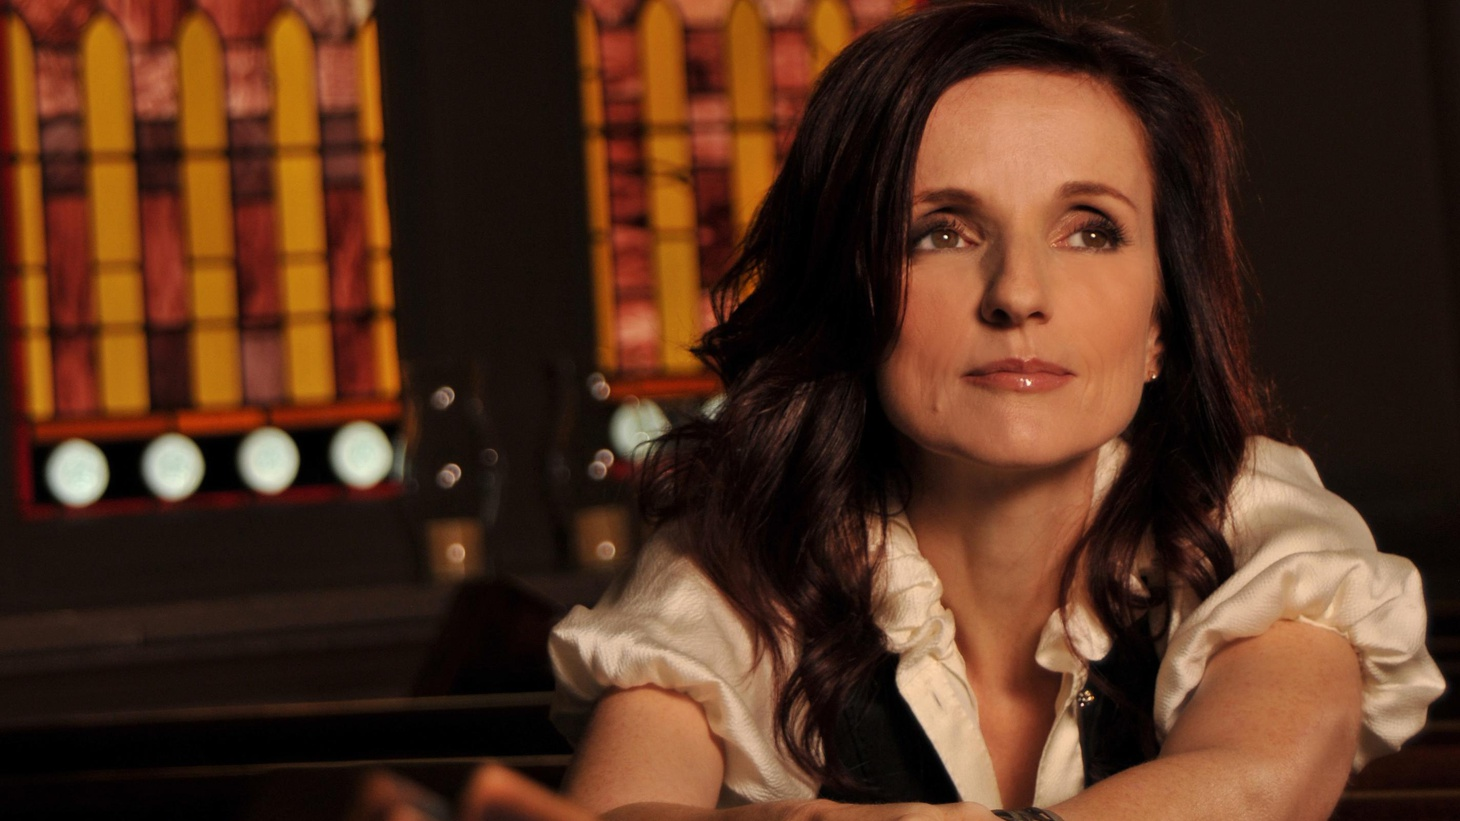 """On her 7th full length release, Patty Griffin celebrates the soul of American music with a tribute to Gospel. The CD, Downtown Church features 14 inspiring songs recorded in a Presbyterian Church in downtown Nashville, with appearances from Emmylou Harris, Buddy and Julie Miller, and Raul Malo. Today's Top Tune features Mike Farris and """"gospel royalty"""" Regina McCrary on """"Wade In The Water."""""""